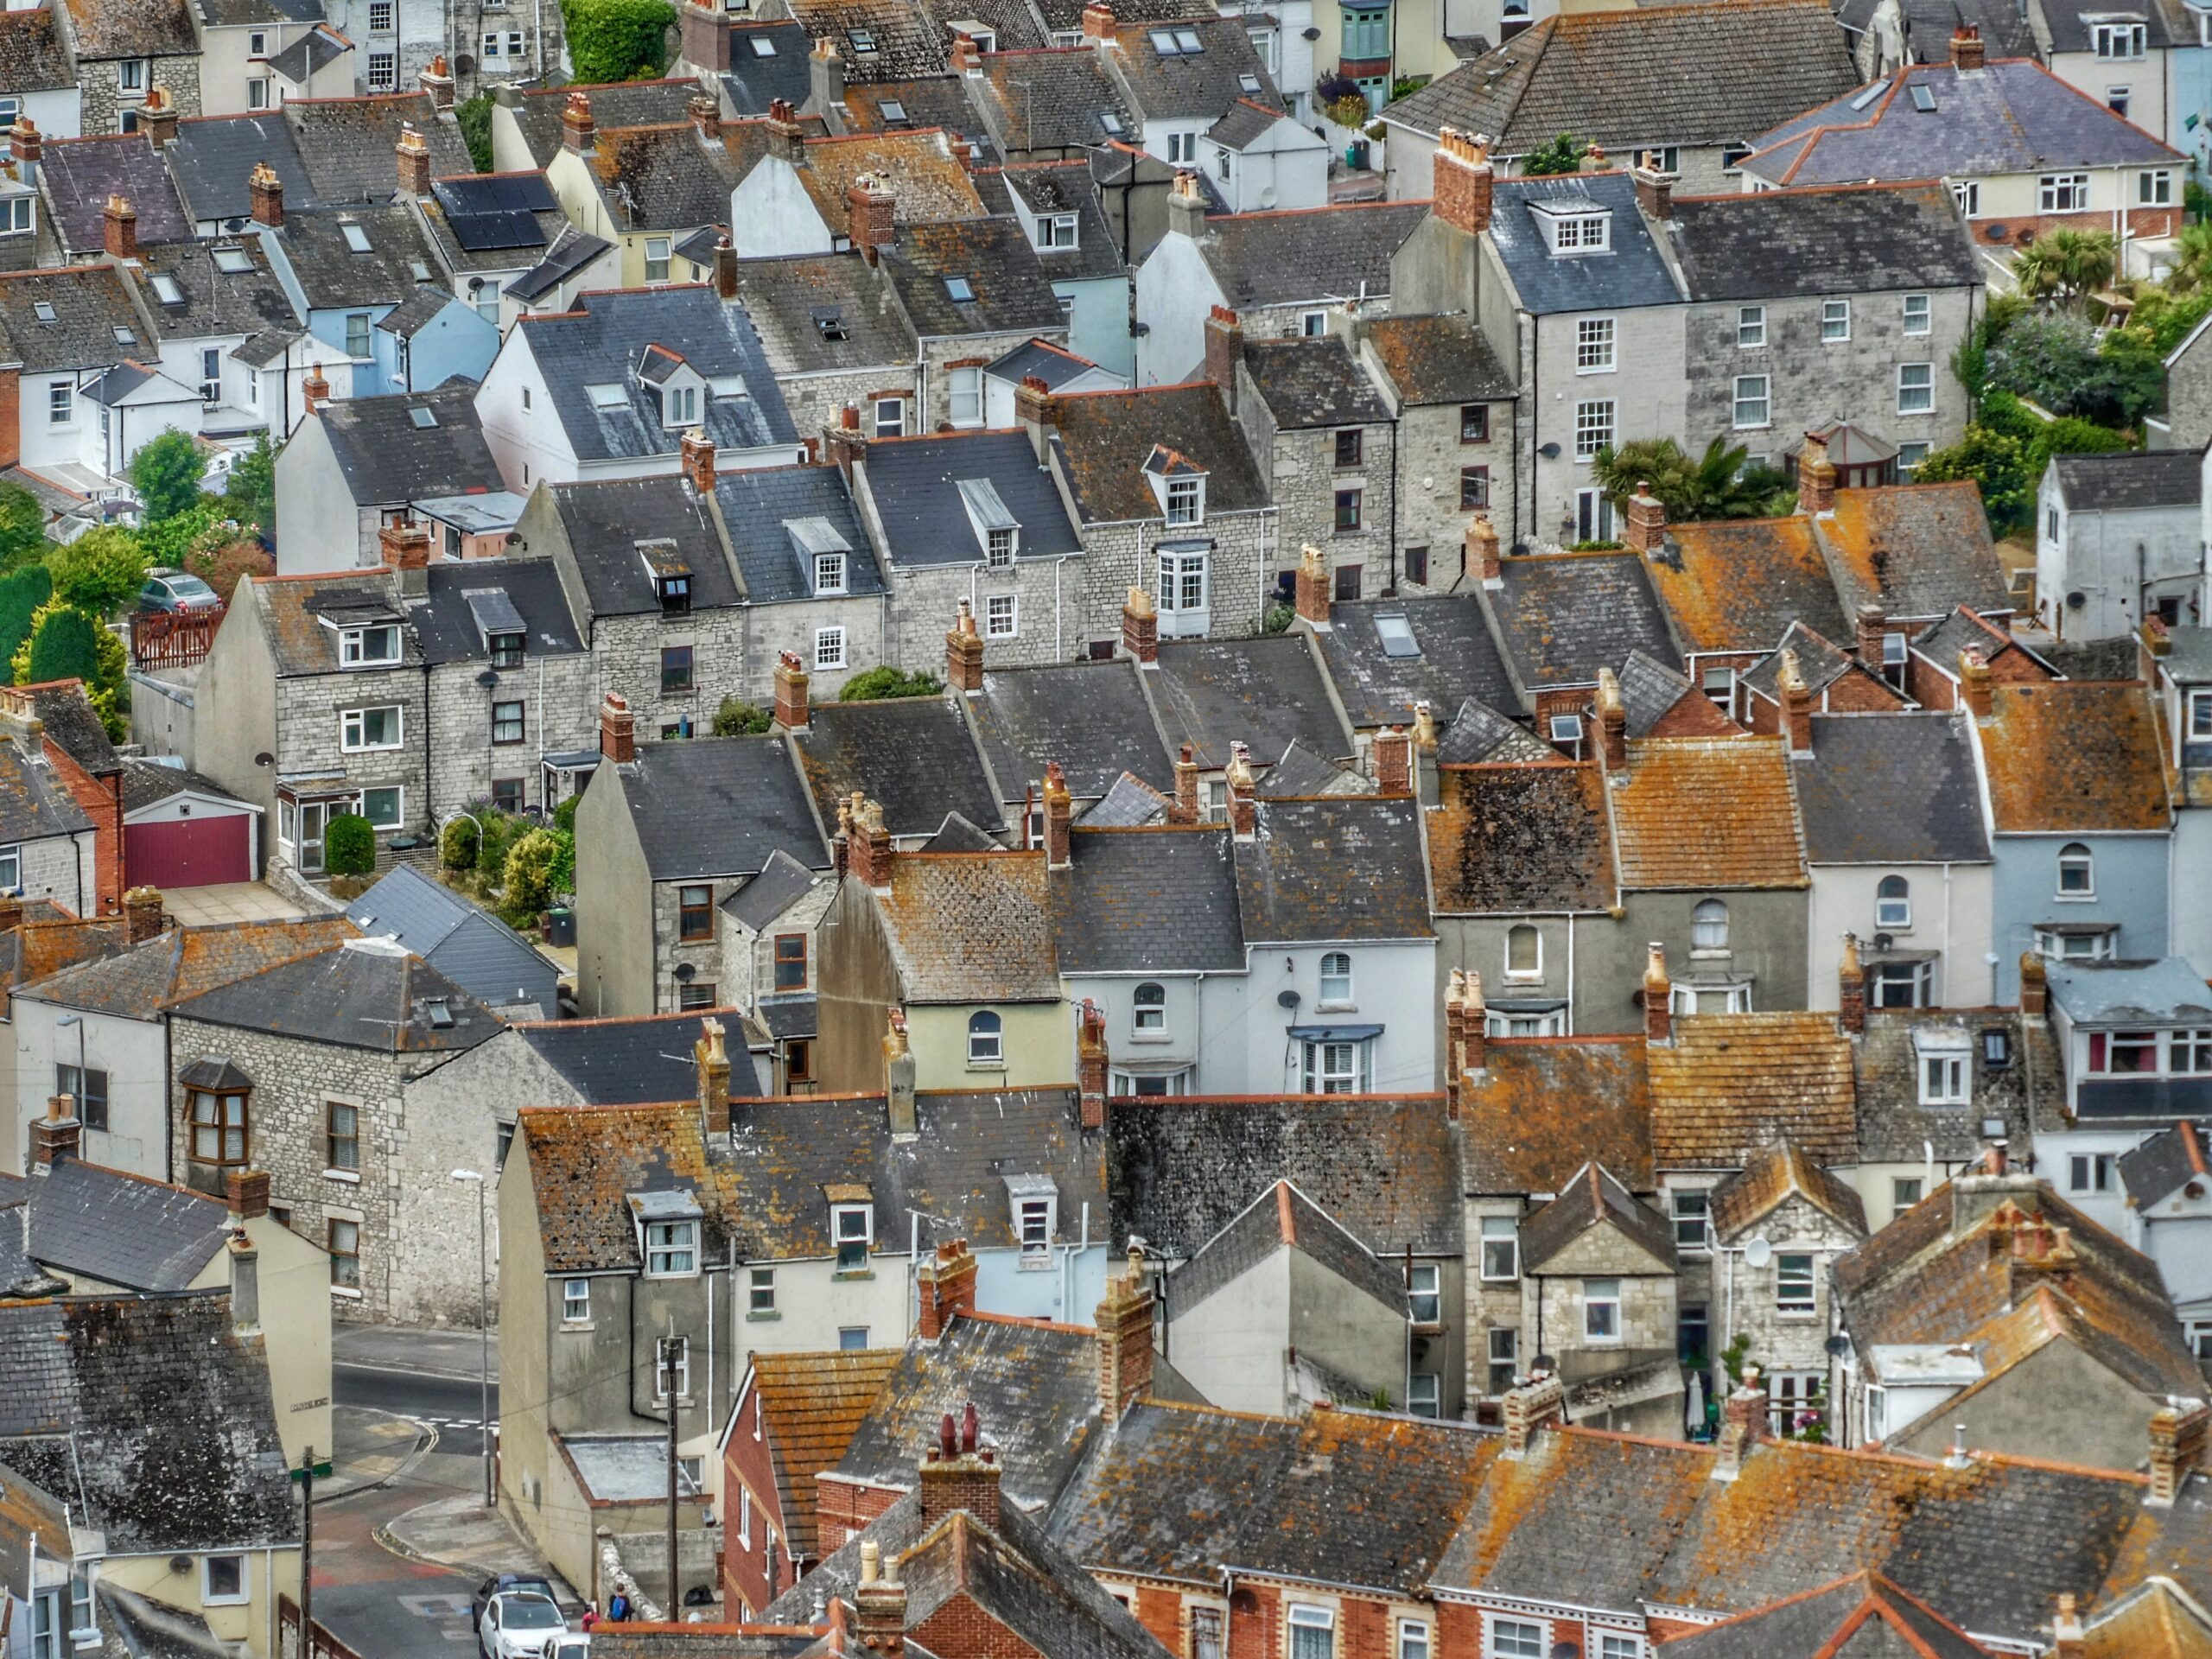 Can we use artificial intelligence to find homes for people?